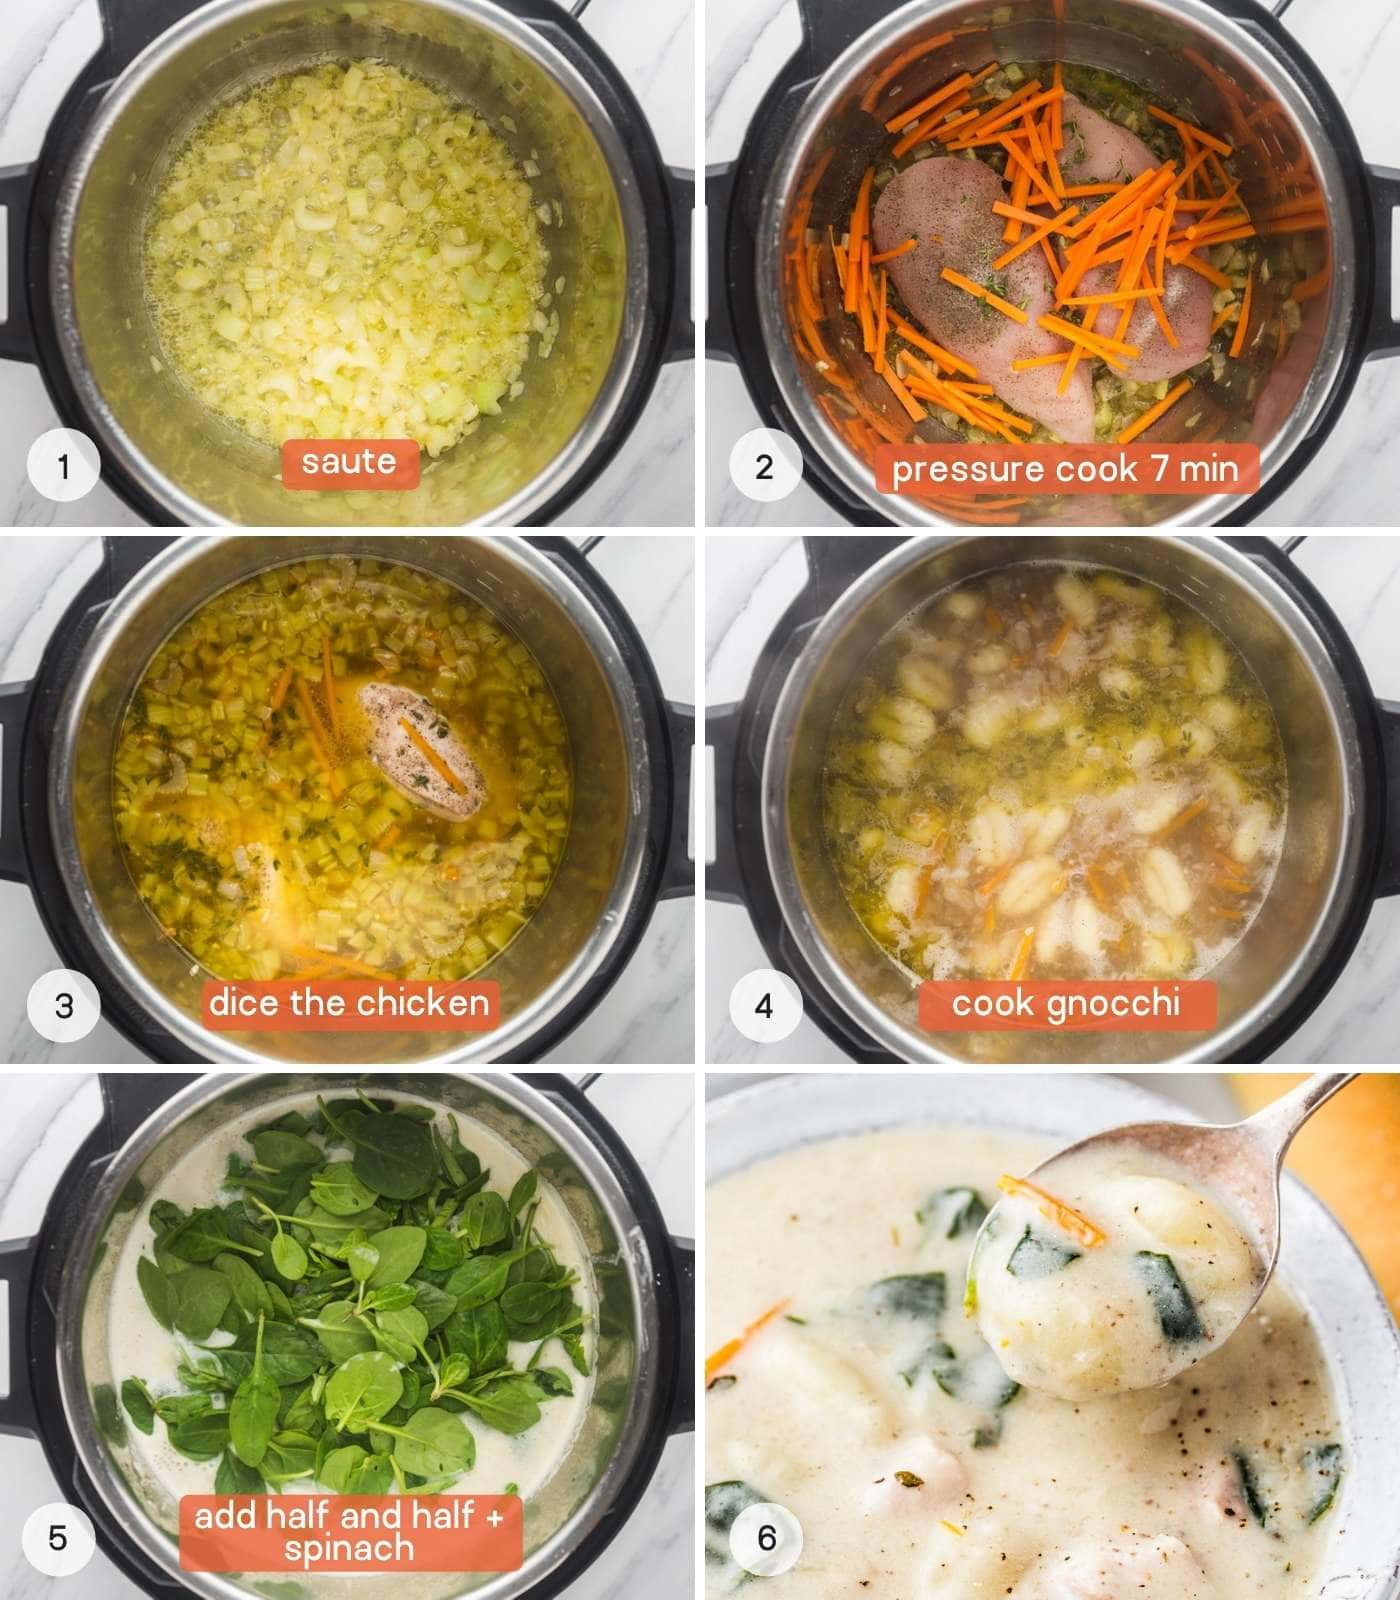 How to make chicken gnocchi soup in the Instant Pot, a collage with 6 images